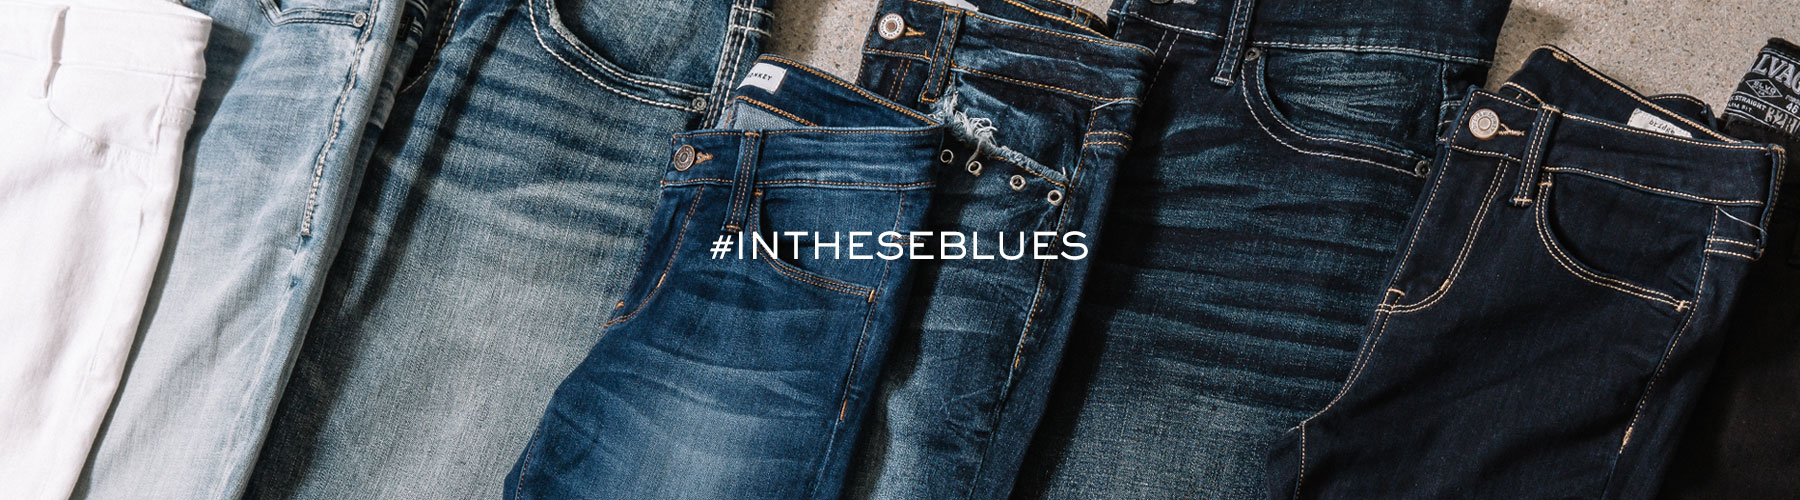 Close up view of different washes of jeans, from light to dark.